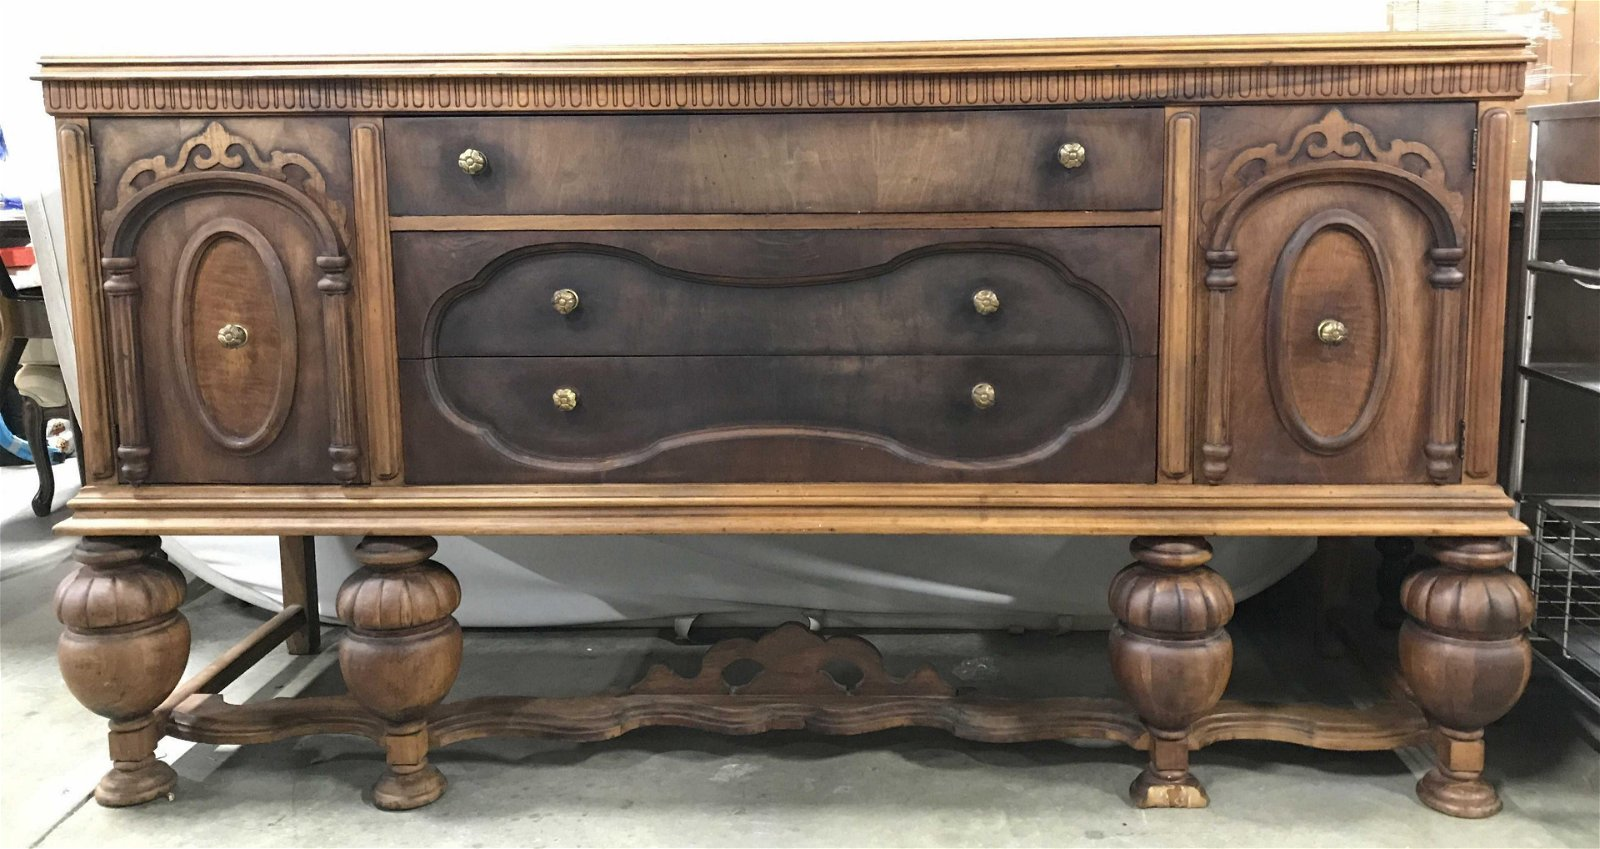 HANOVER CABINET CO Antique Wooden Credenza